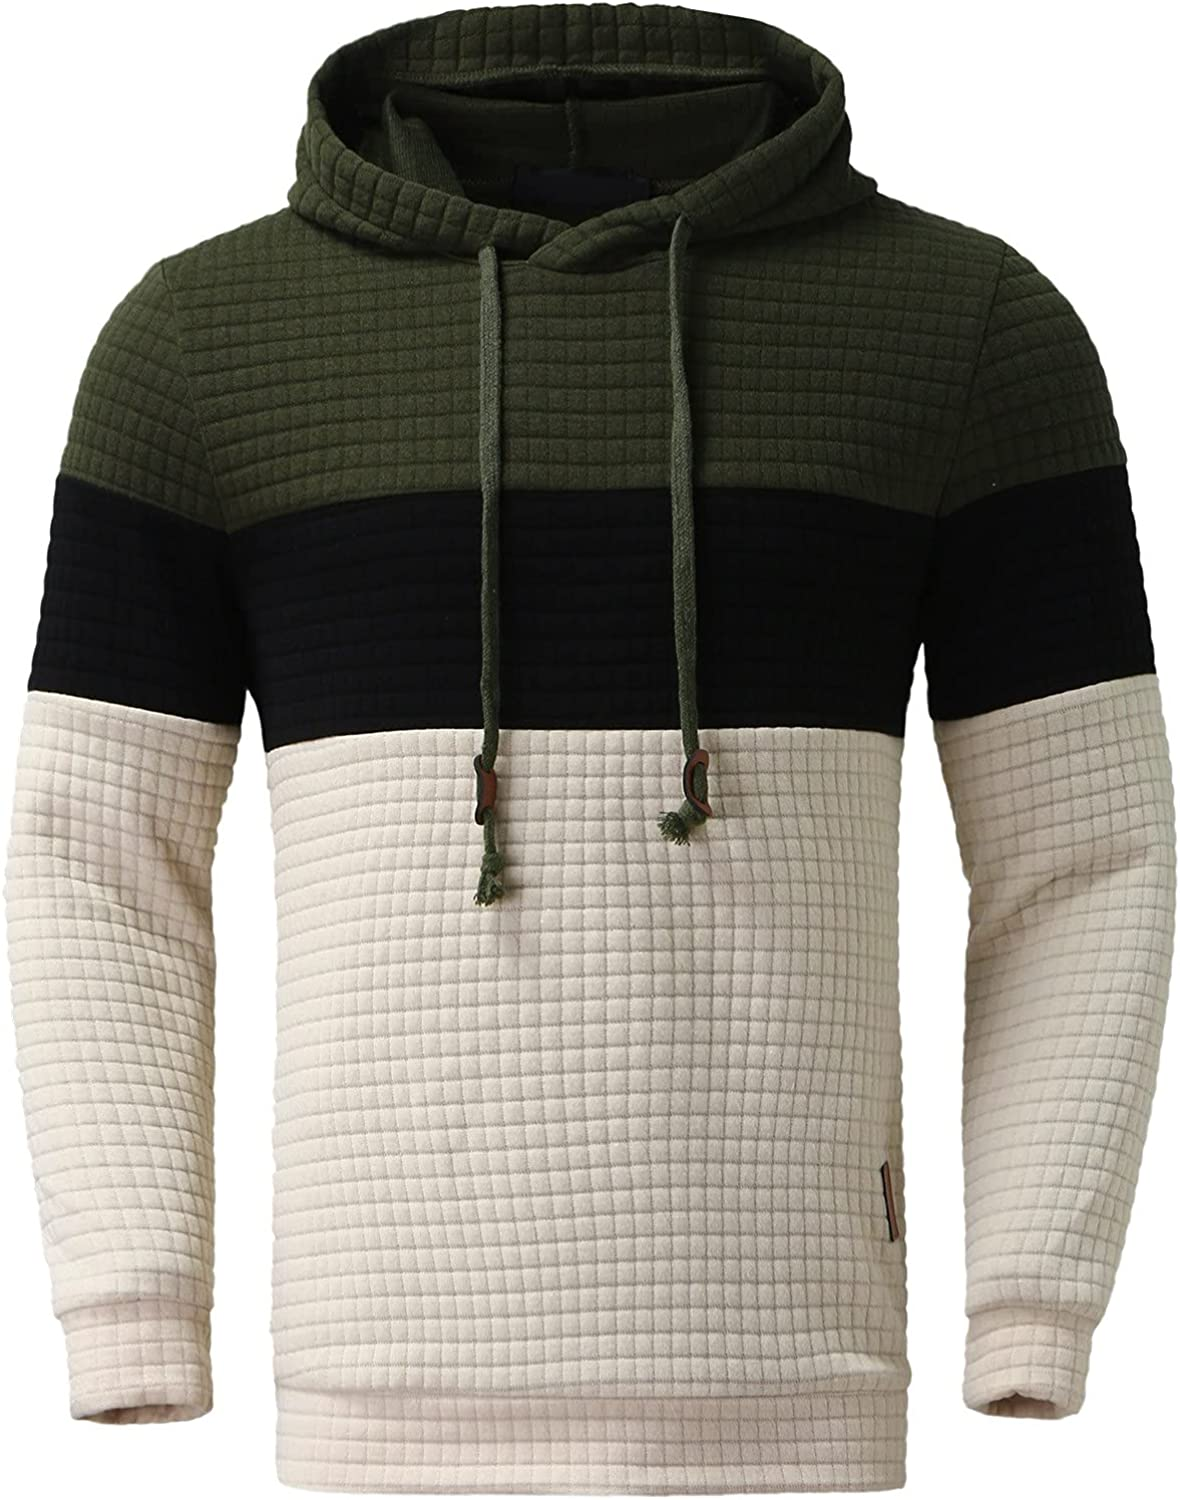 XXBR Jacquard Plaid Hooded Sweatshirts for Mens, Fall Men's Fashion Color Block Patchwork Hoodies Casual Sports Pullover